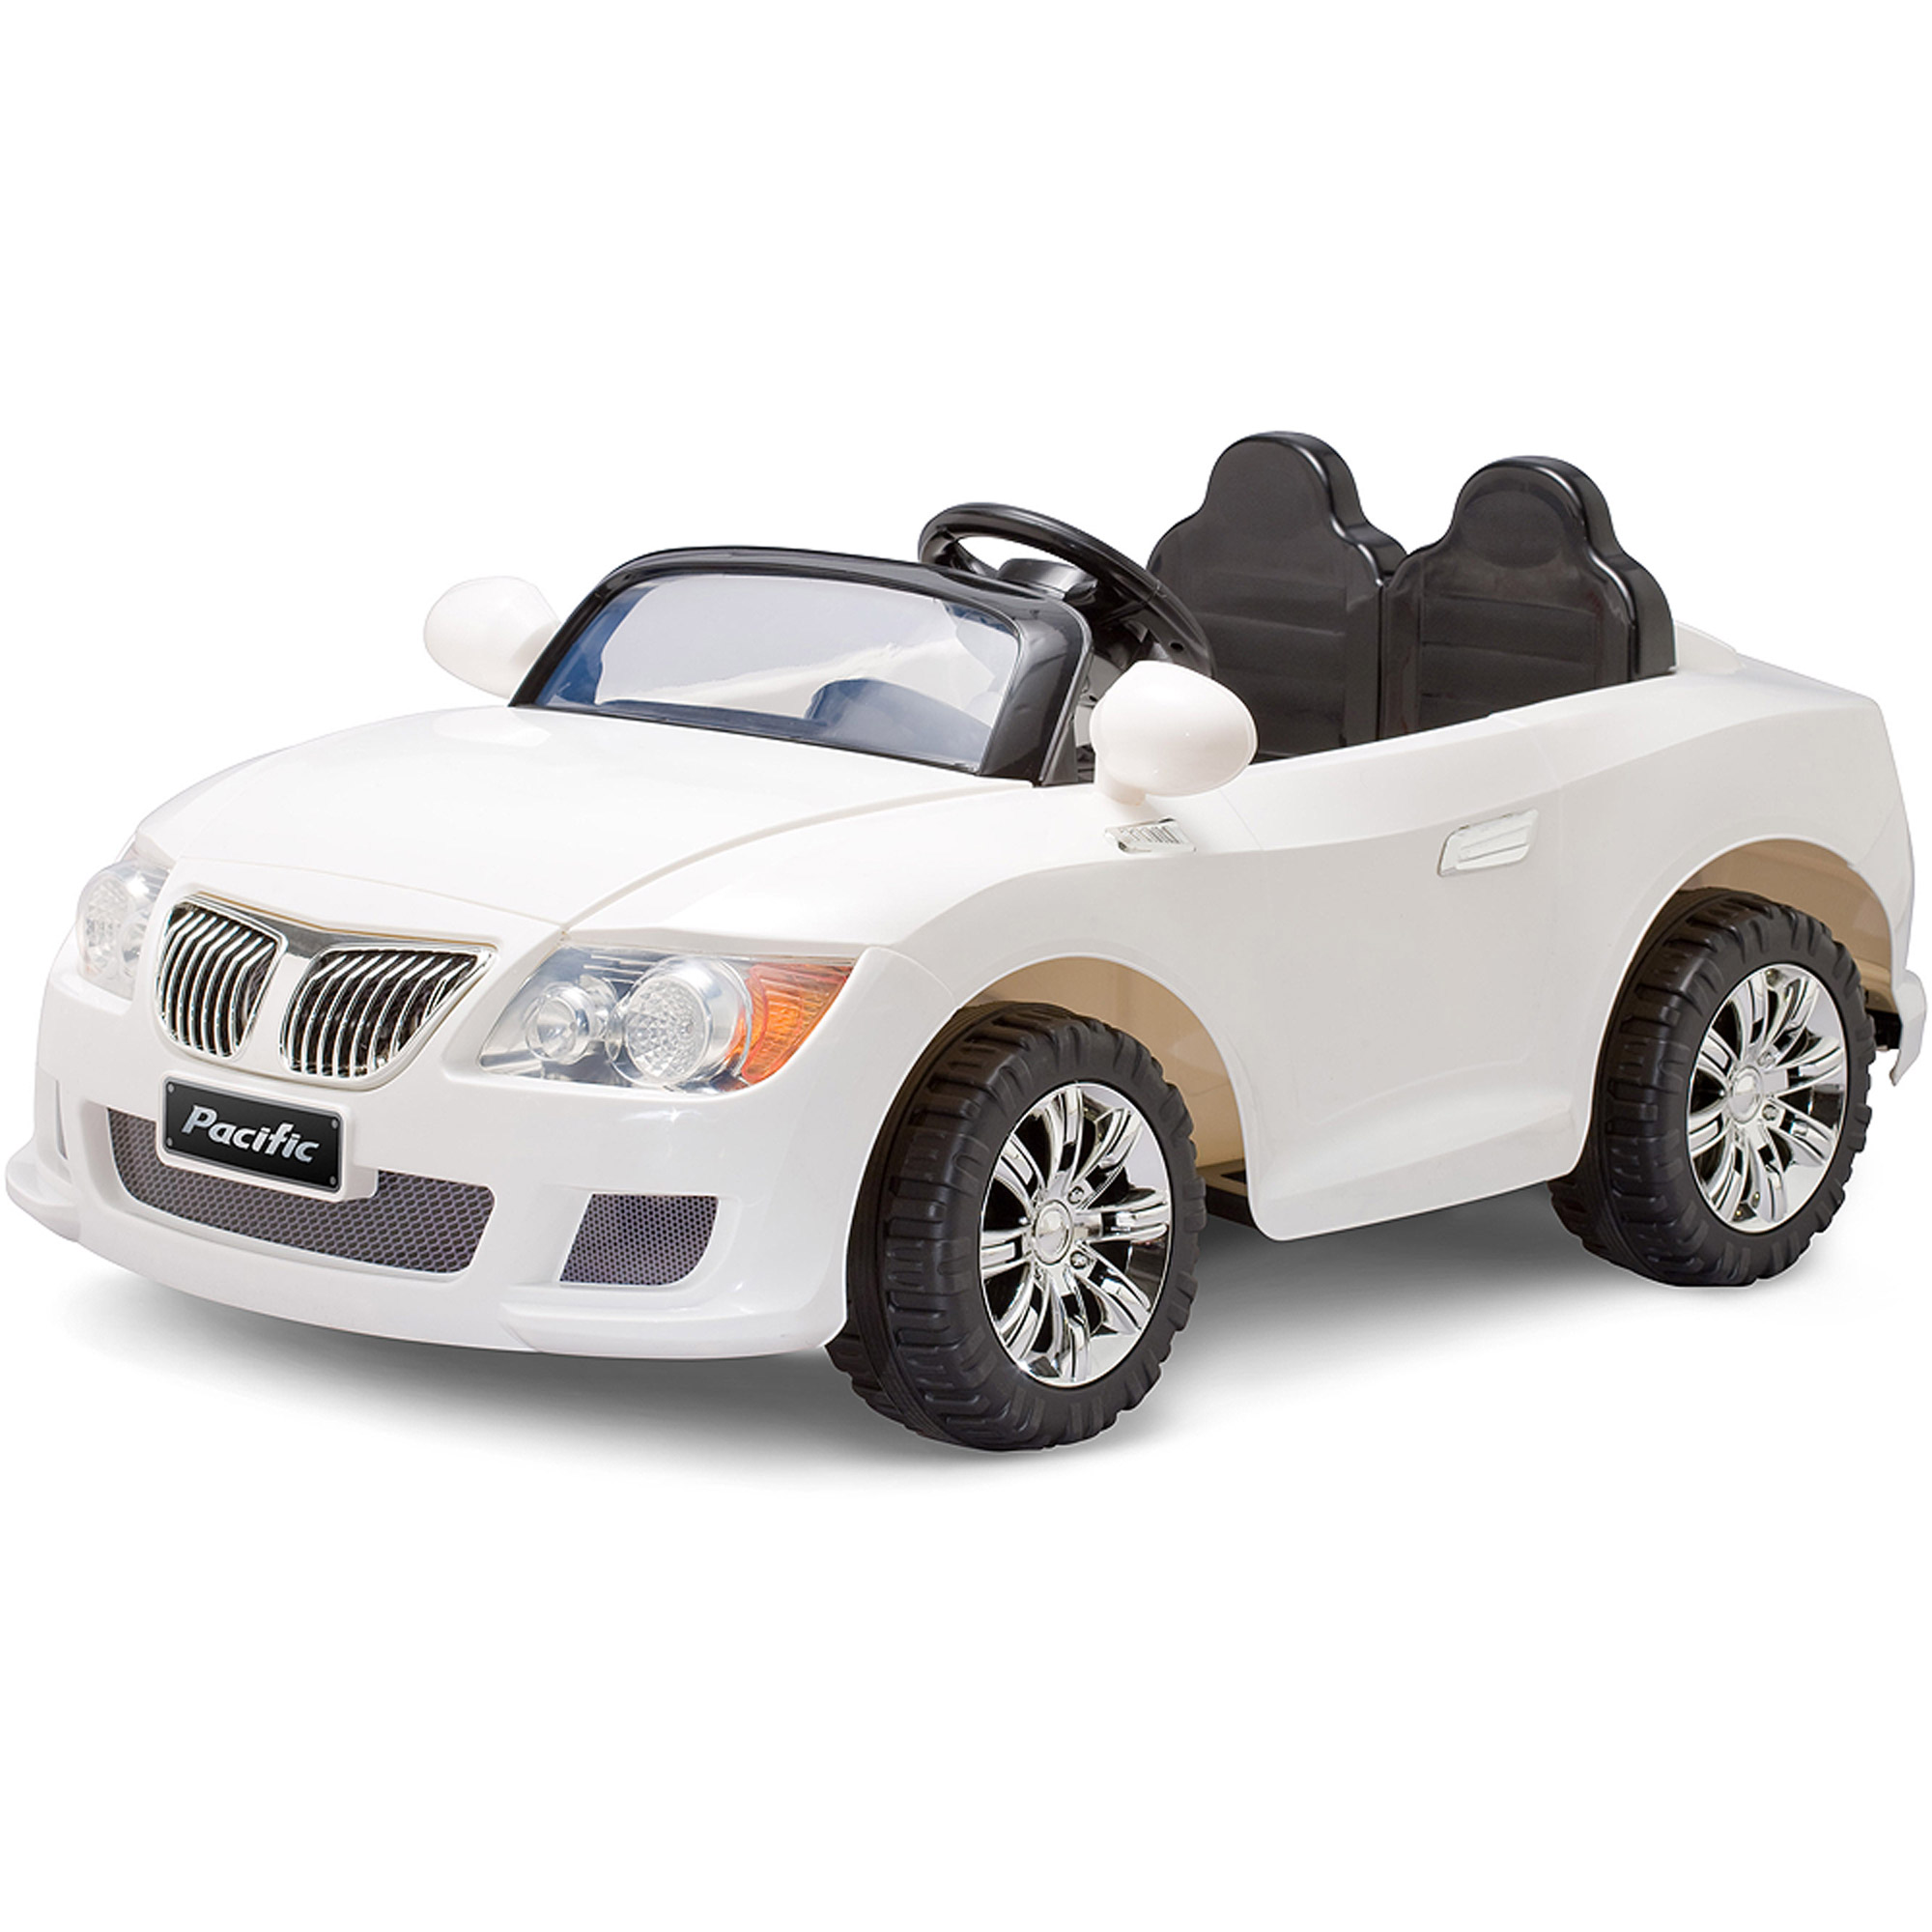 Pacific Cycle 12 Volt Battery Powered Convertible Sports Car